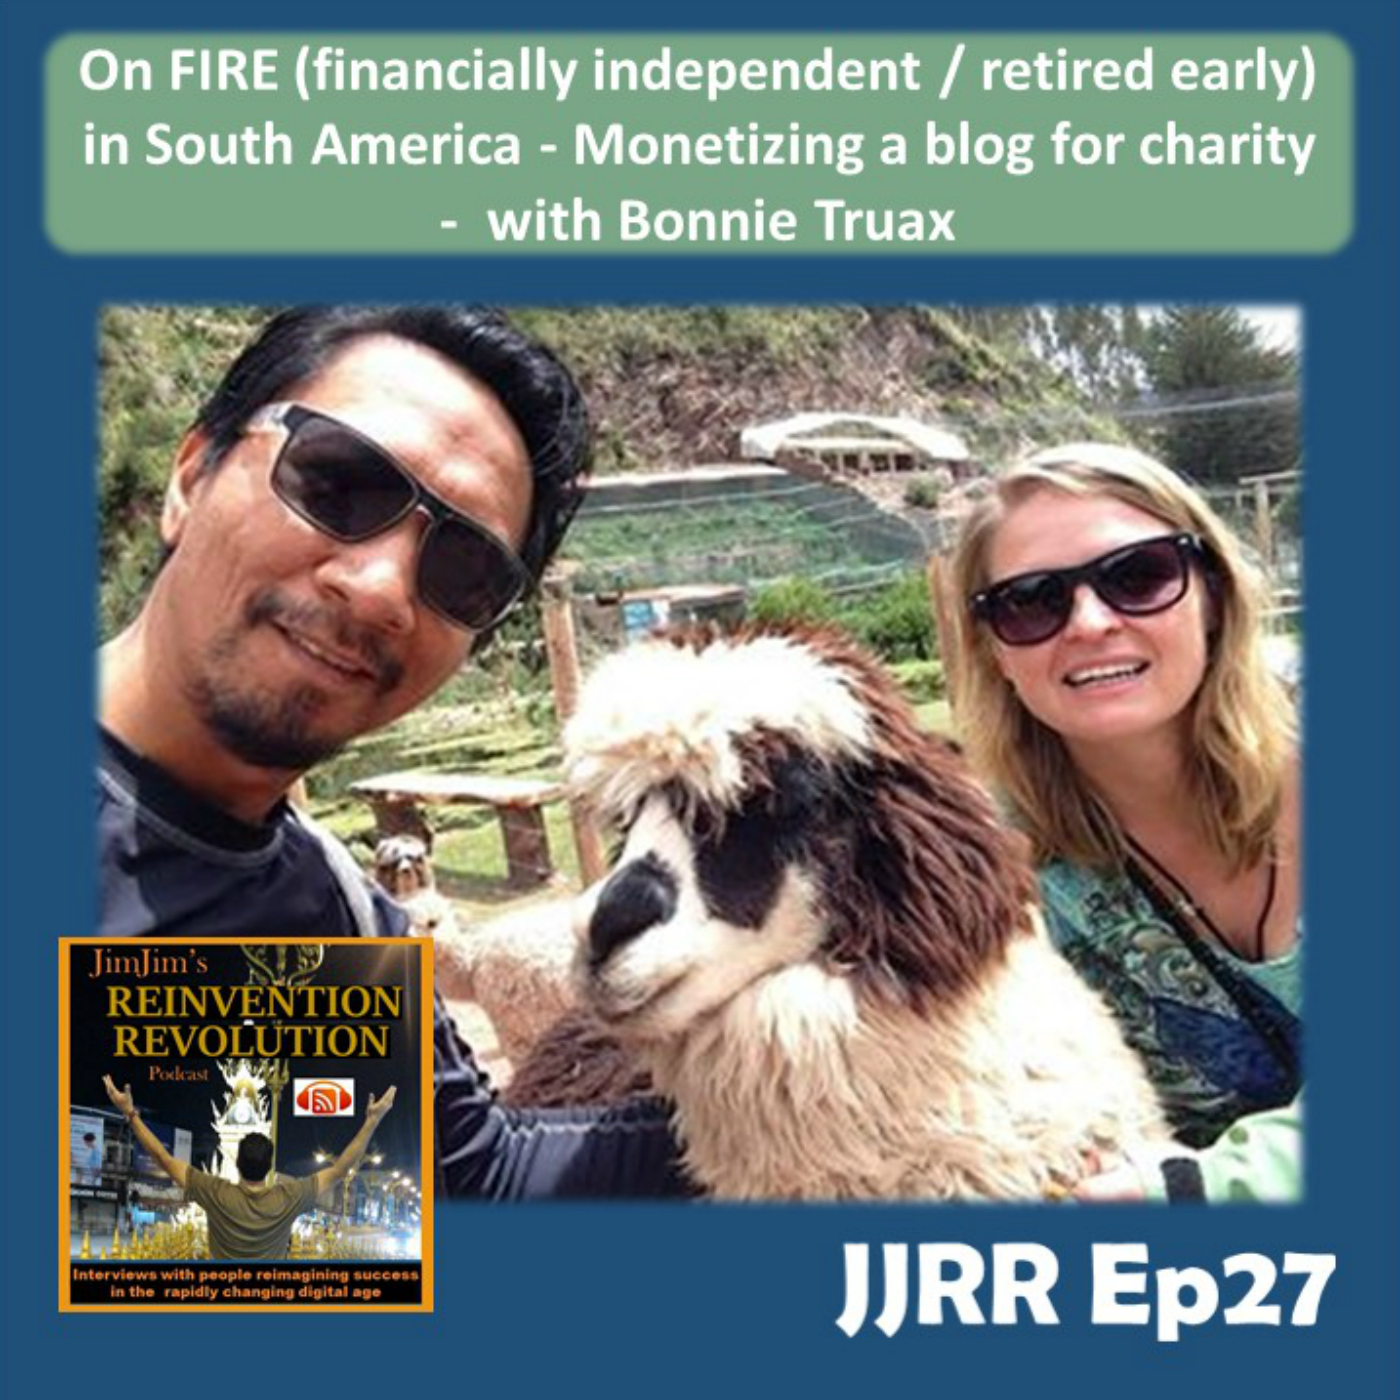 JJRR Ep27 On FIRE (financially independent / retired early) in South America – Monetizing a blog for charity – with Bonnie Truax